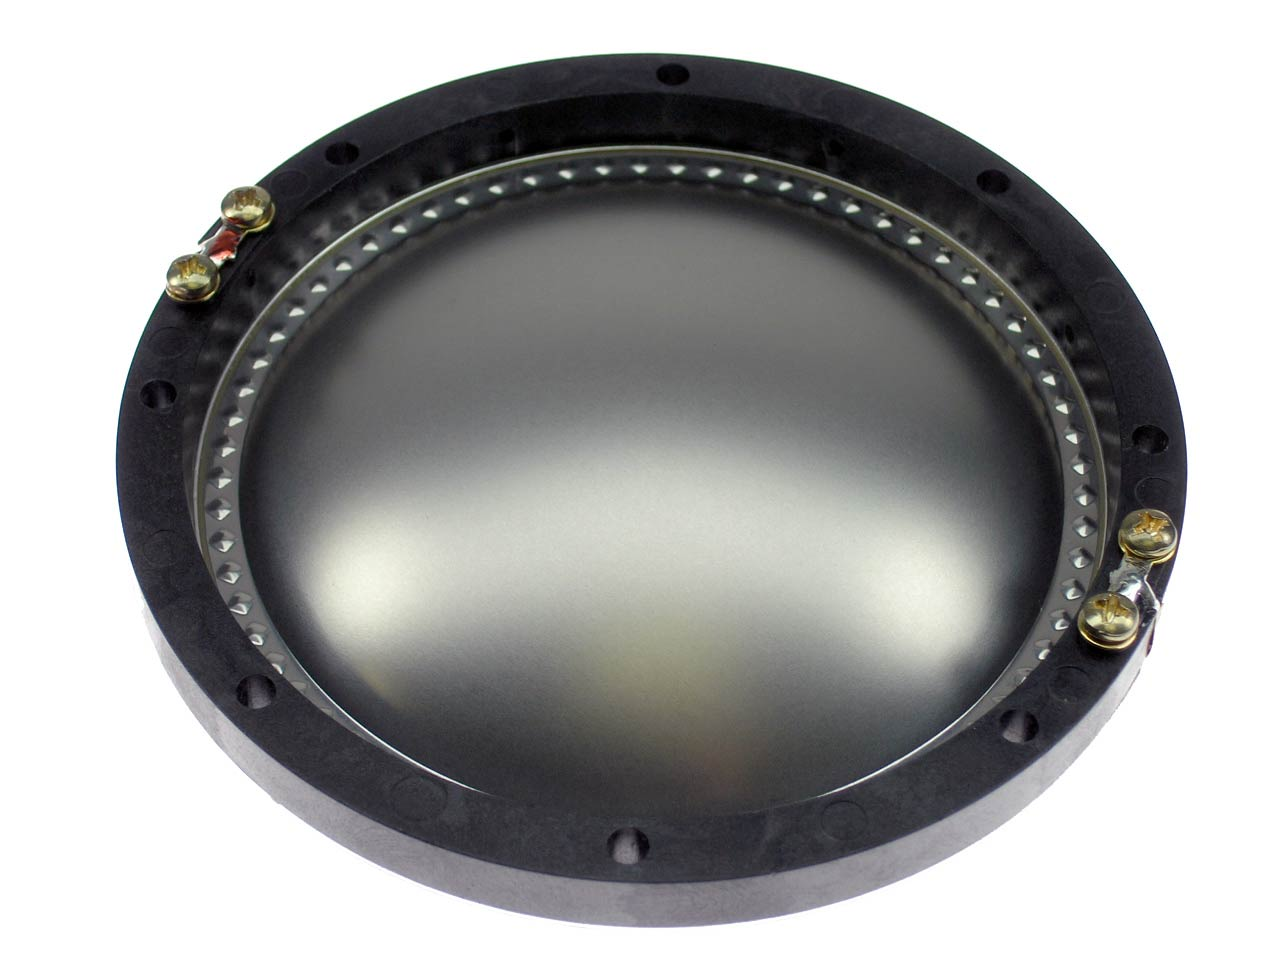 SS Audio Diaphragm For JBL 2440, 2441, 2445, 8 Ohm, D-2445-8